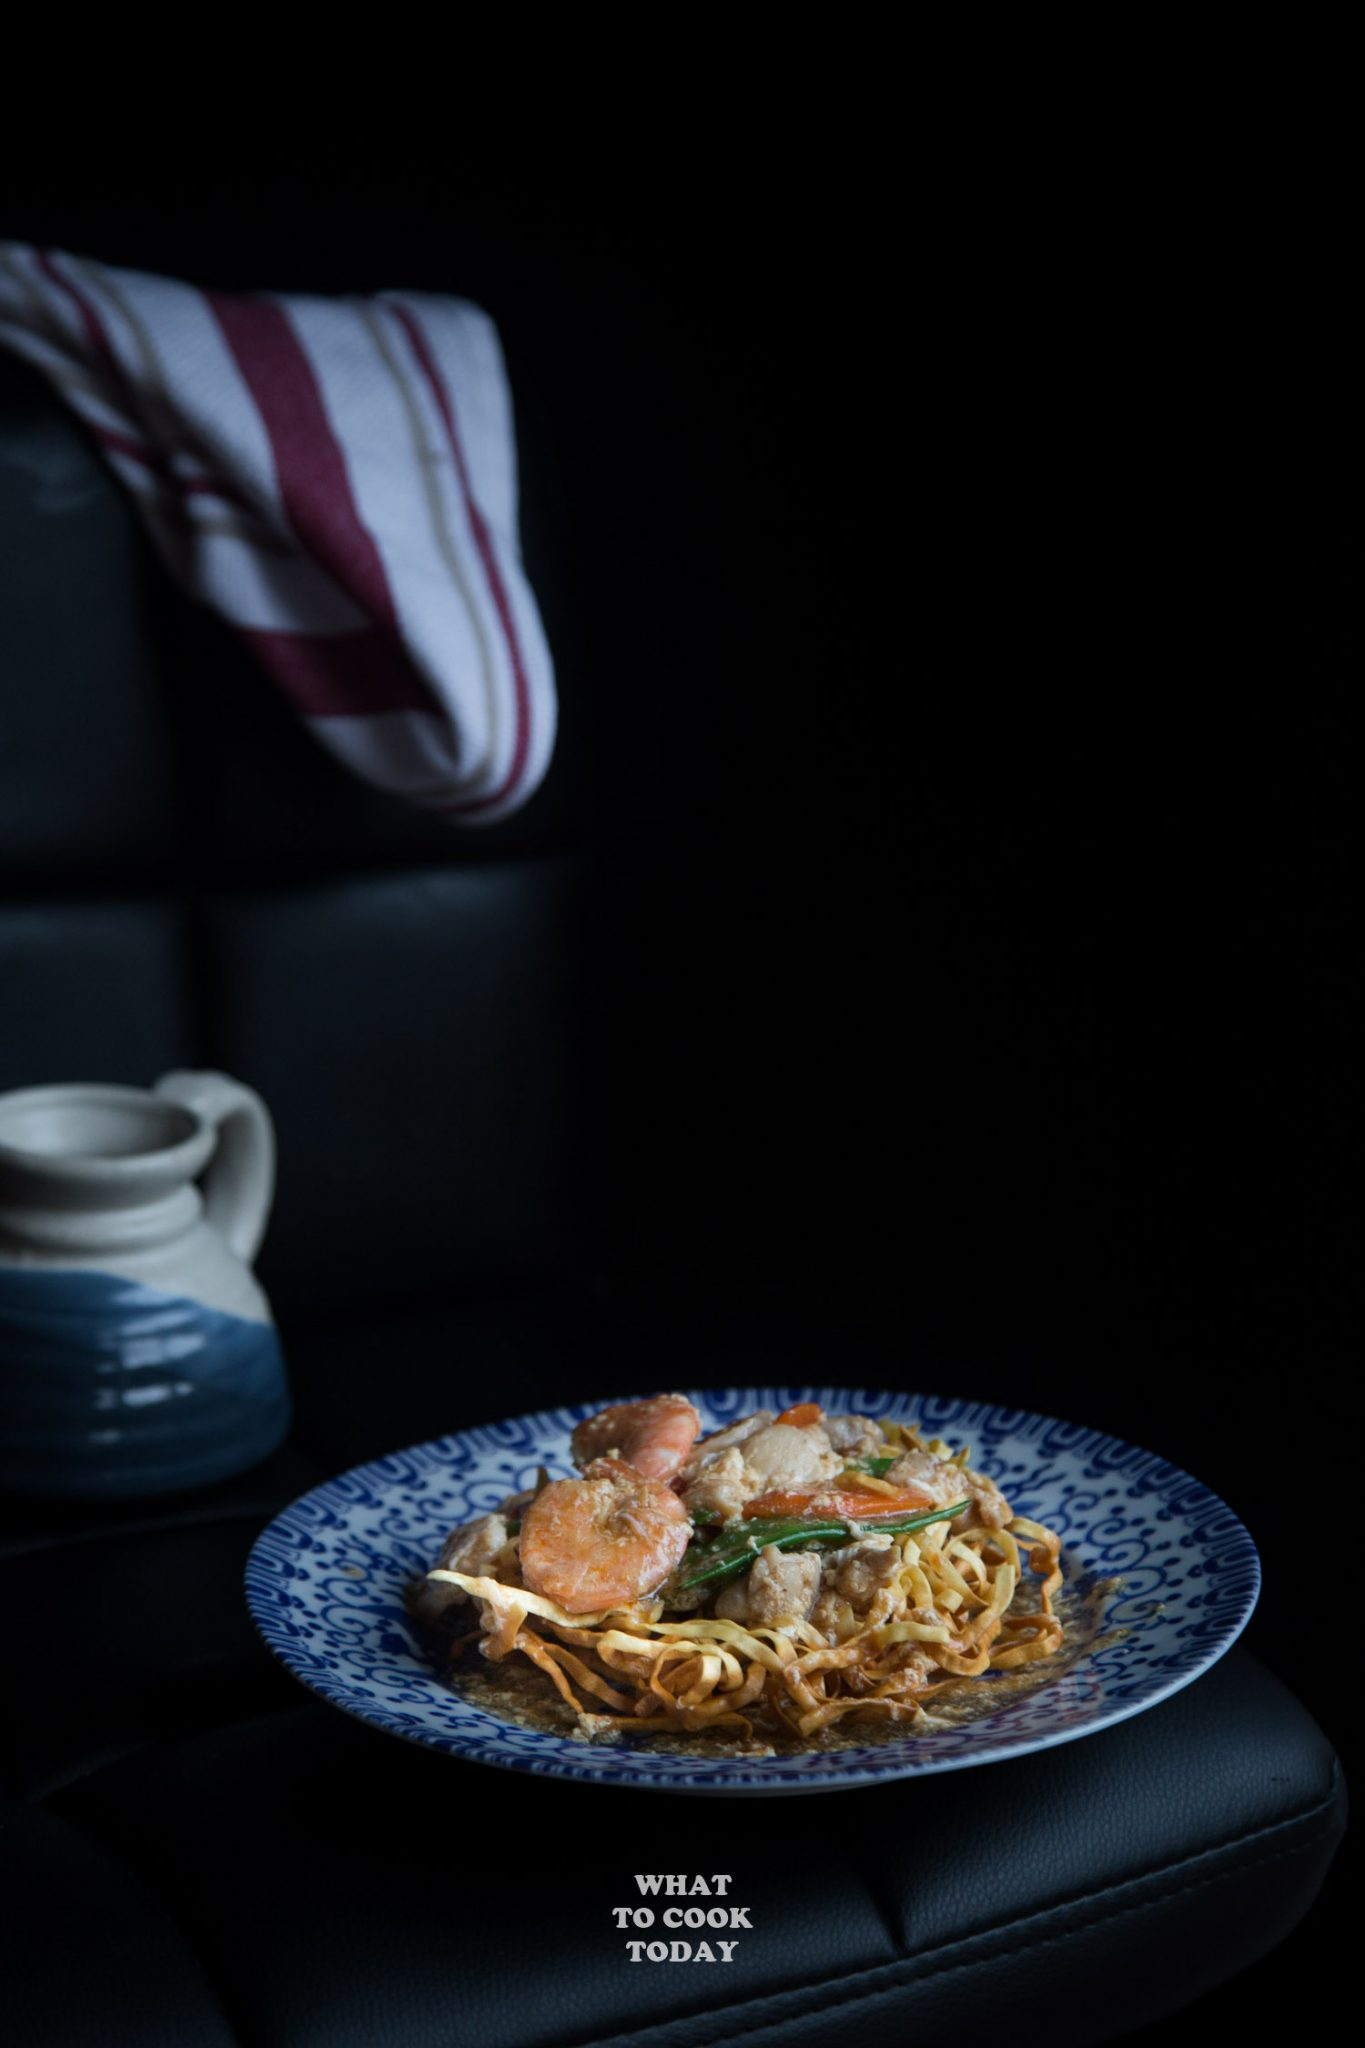 Crispy E Fu Noodle And Seafood Gravy Ifumie Binjai What To Cook Today